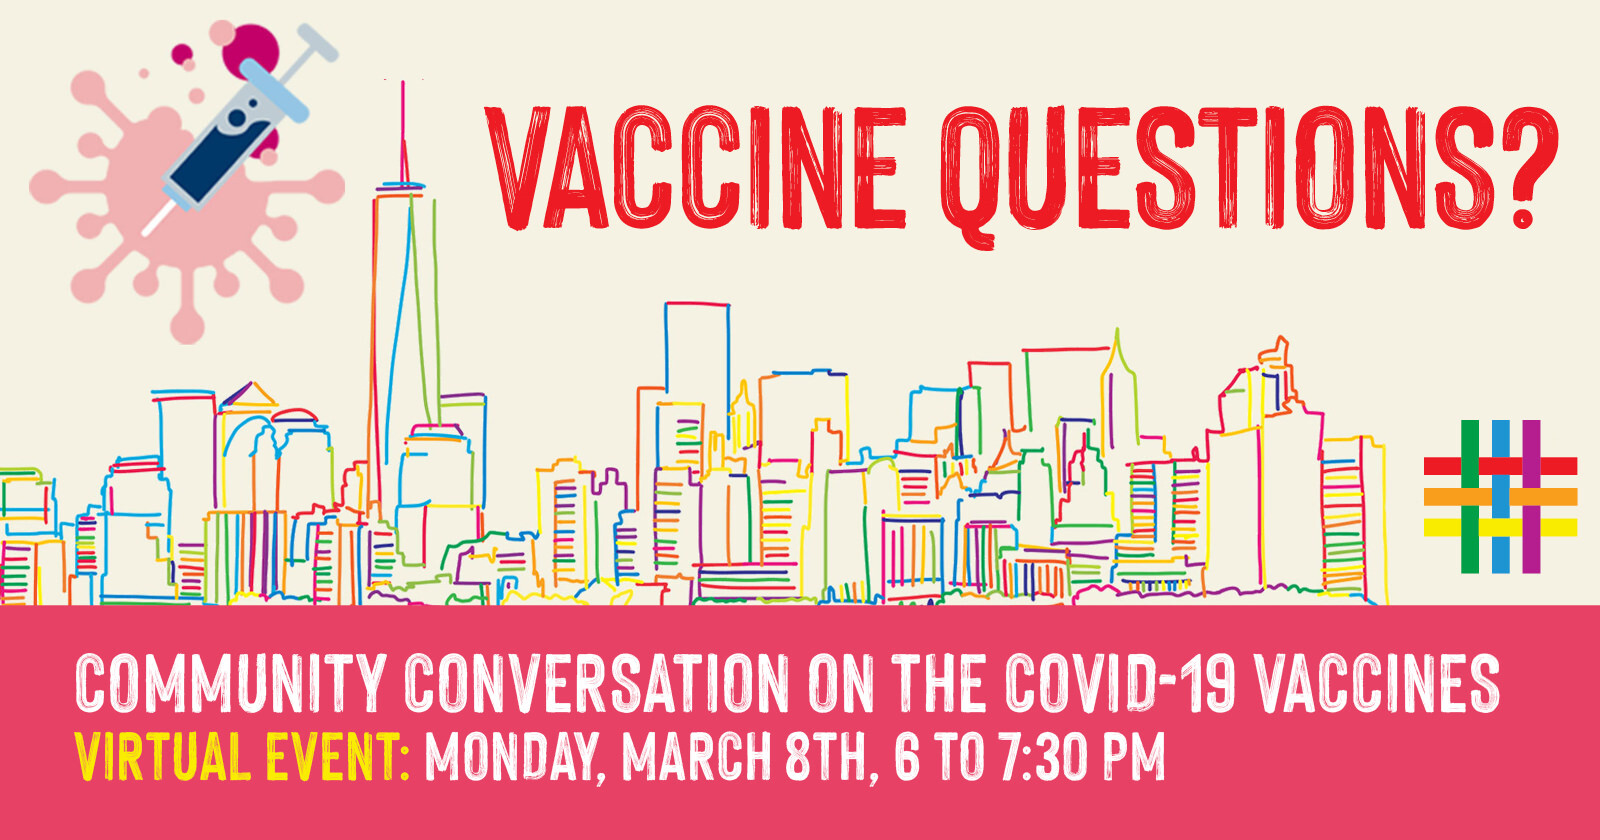 Community Conversation on the COVID-19 Vaccines at Brooklyn Community Pride Center